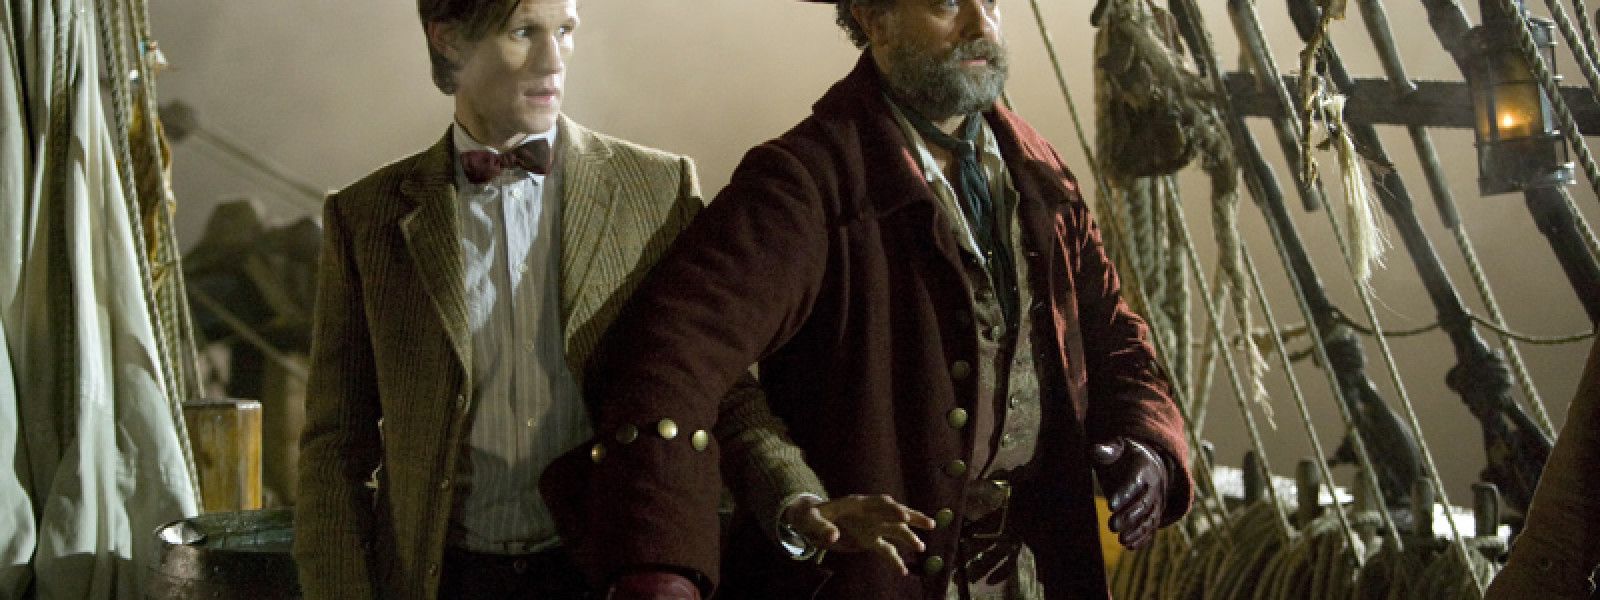 The Doctor and Captain Avery